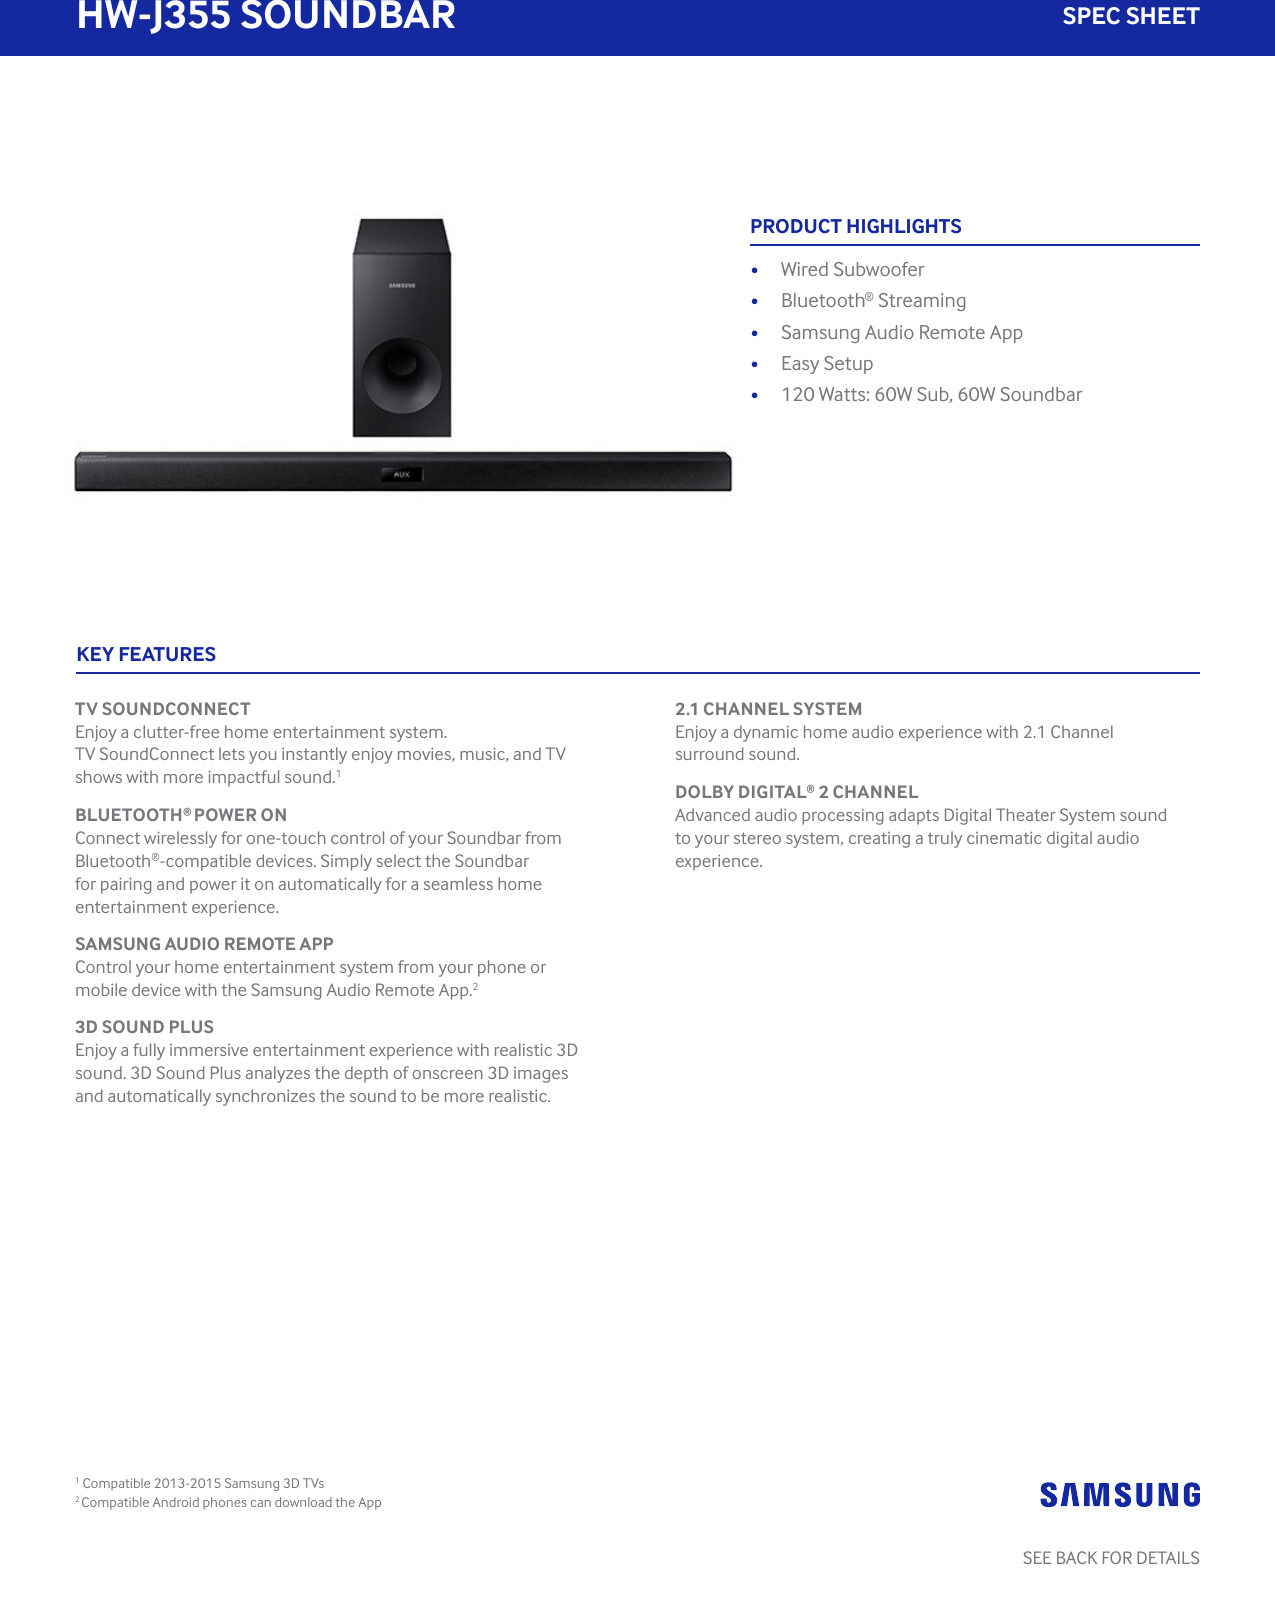 Samsung Hw J355 Za Specification Sheet Surround Sound Wiring Diagram